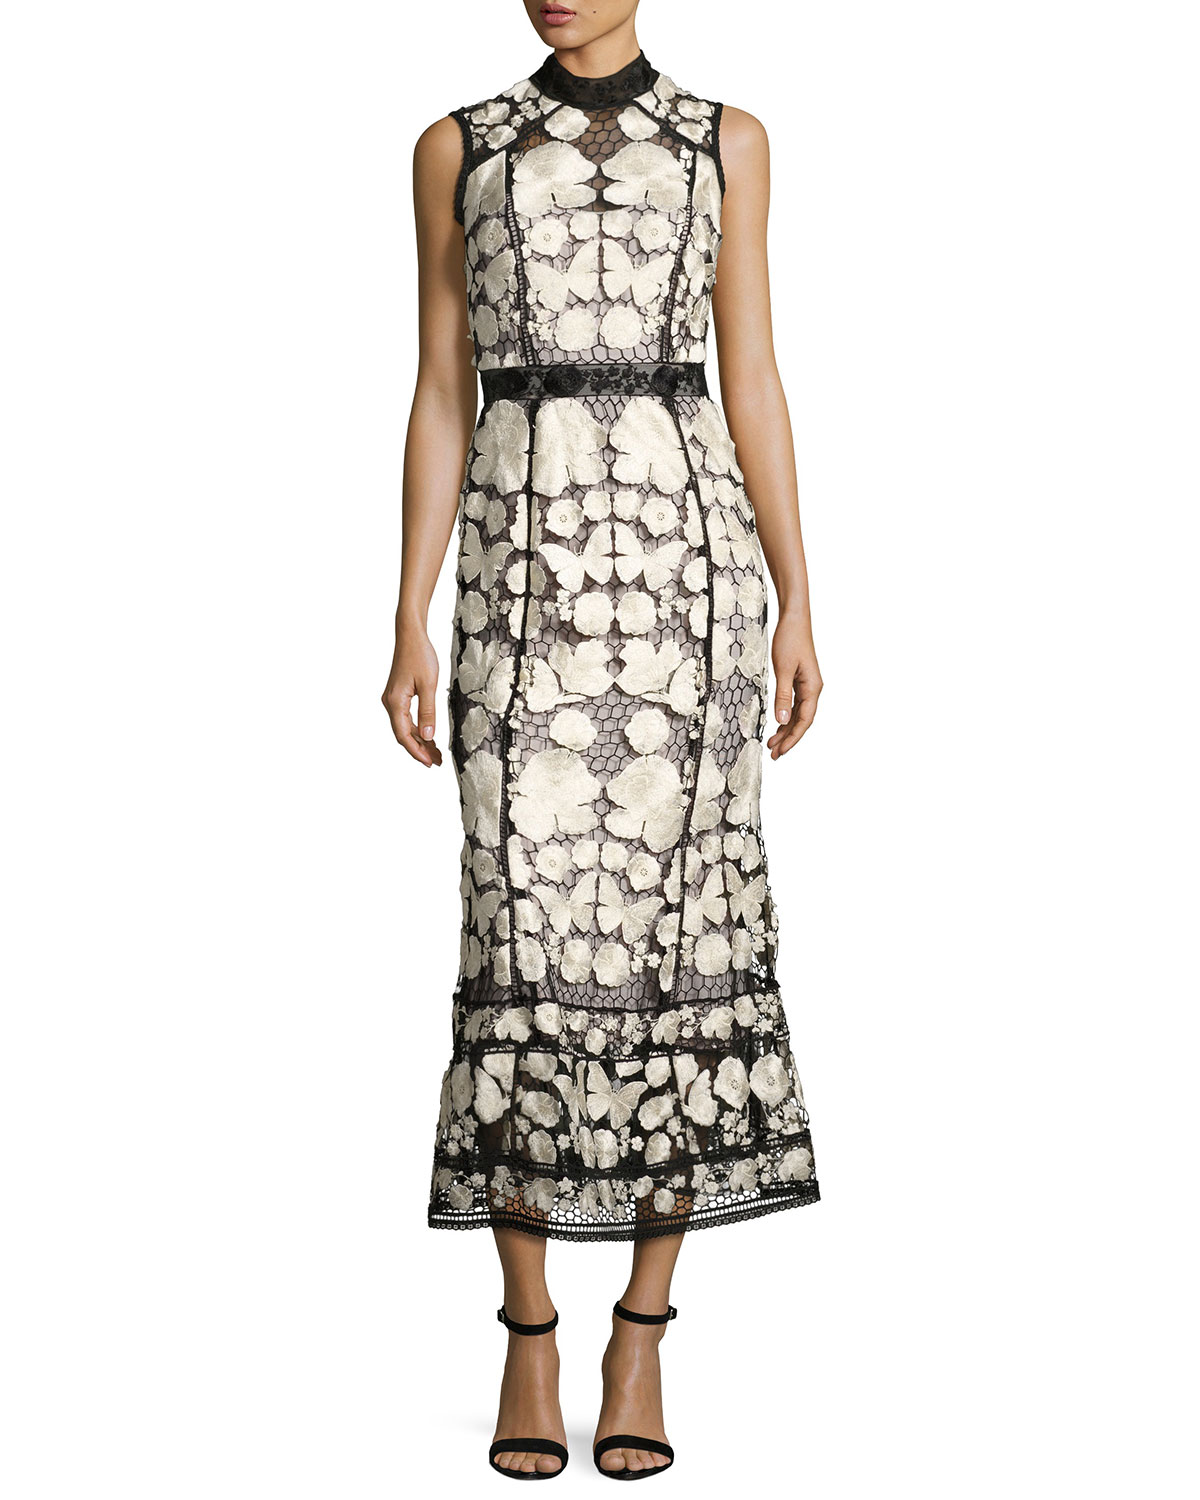 Sleeveless Embroidered Lace Cocktail Dress, Black/White